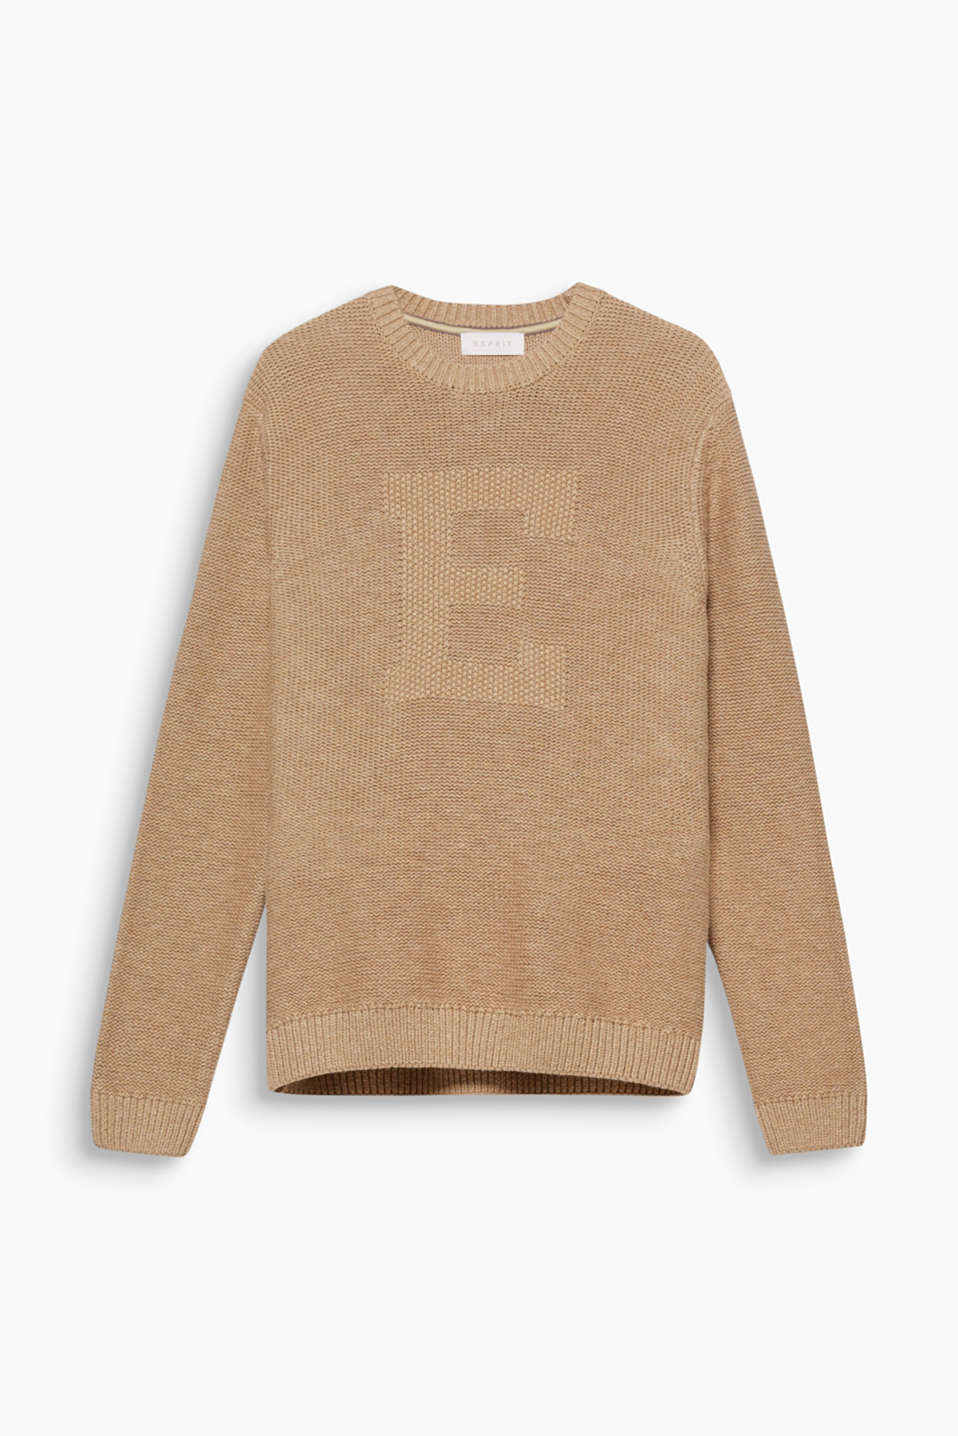 We love knitwear! The striking intarsia lettering gives this jumper a sporty flair,